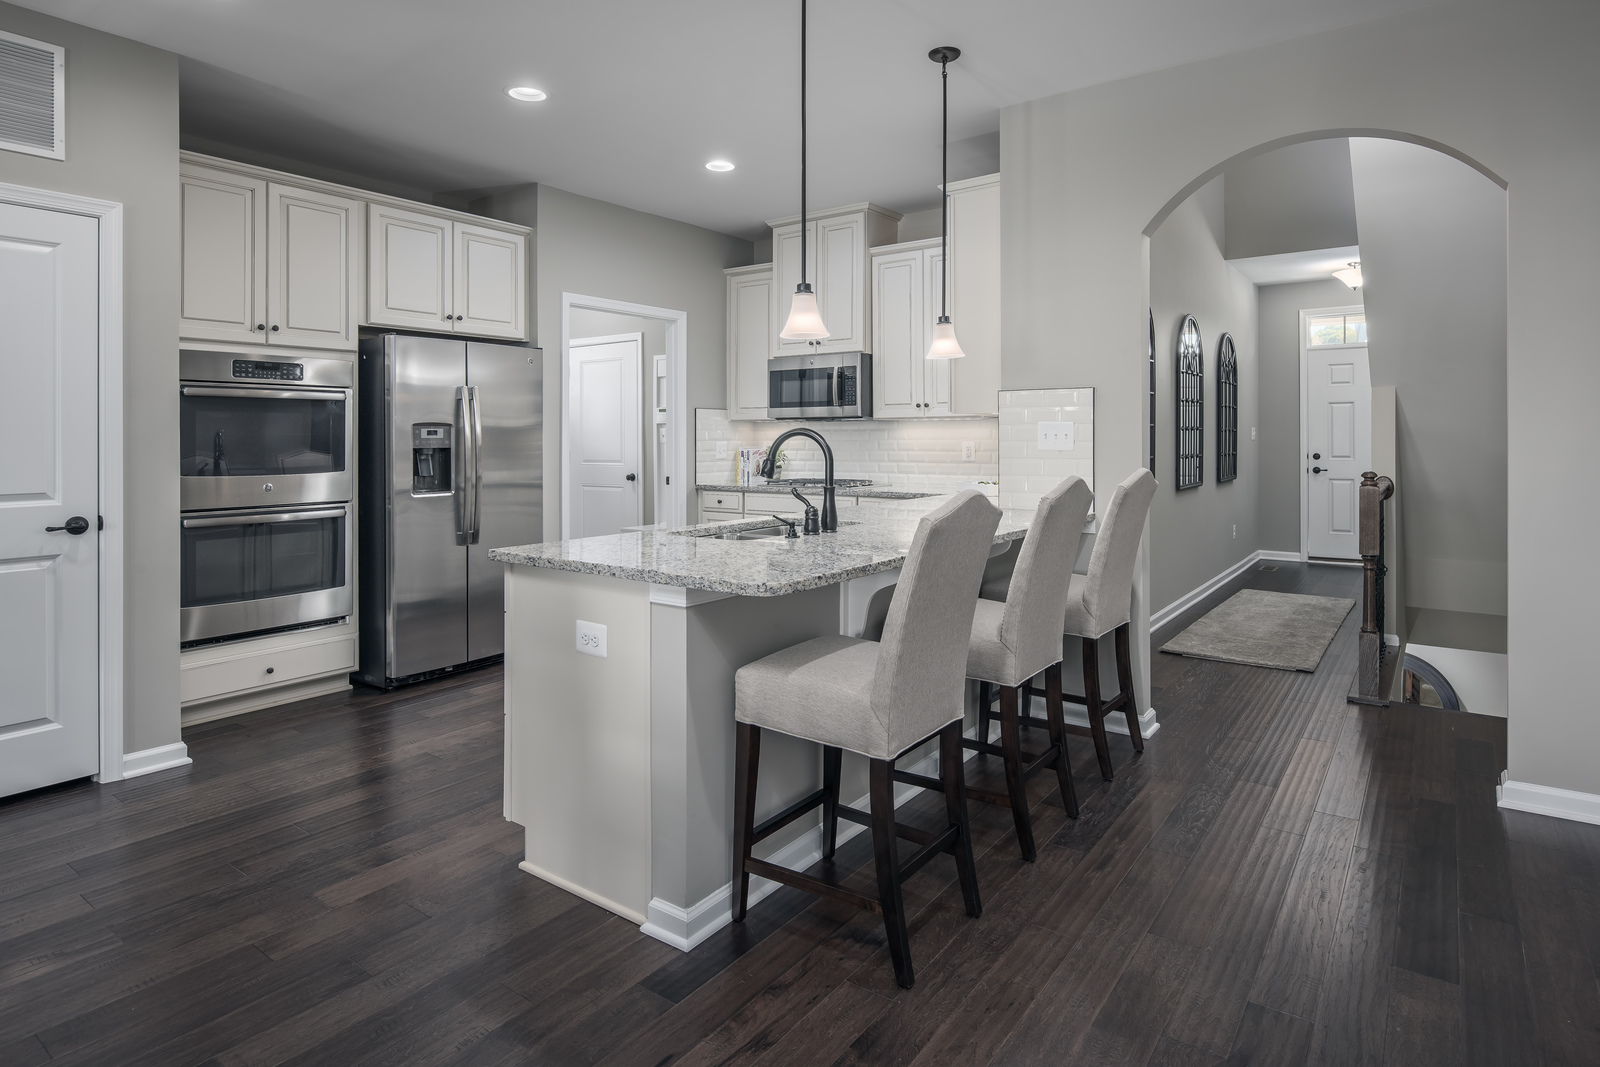 New Homes for sale at Villas At Bryan's Cove in Chesapeake, VA ... on